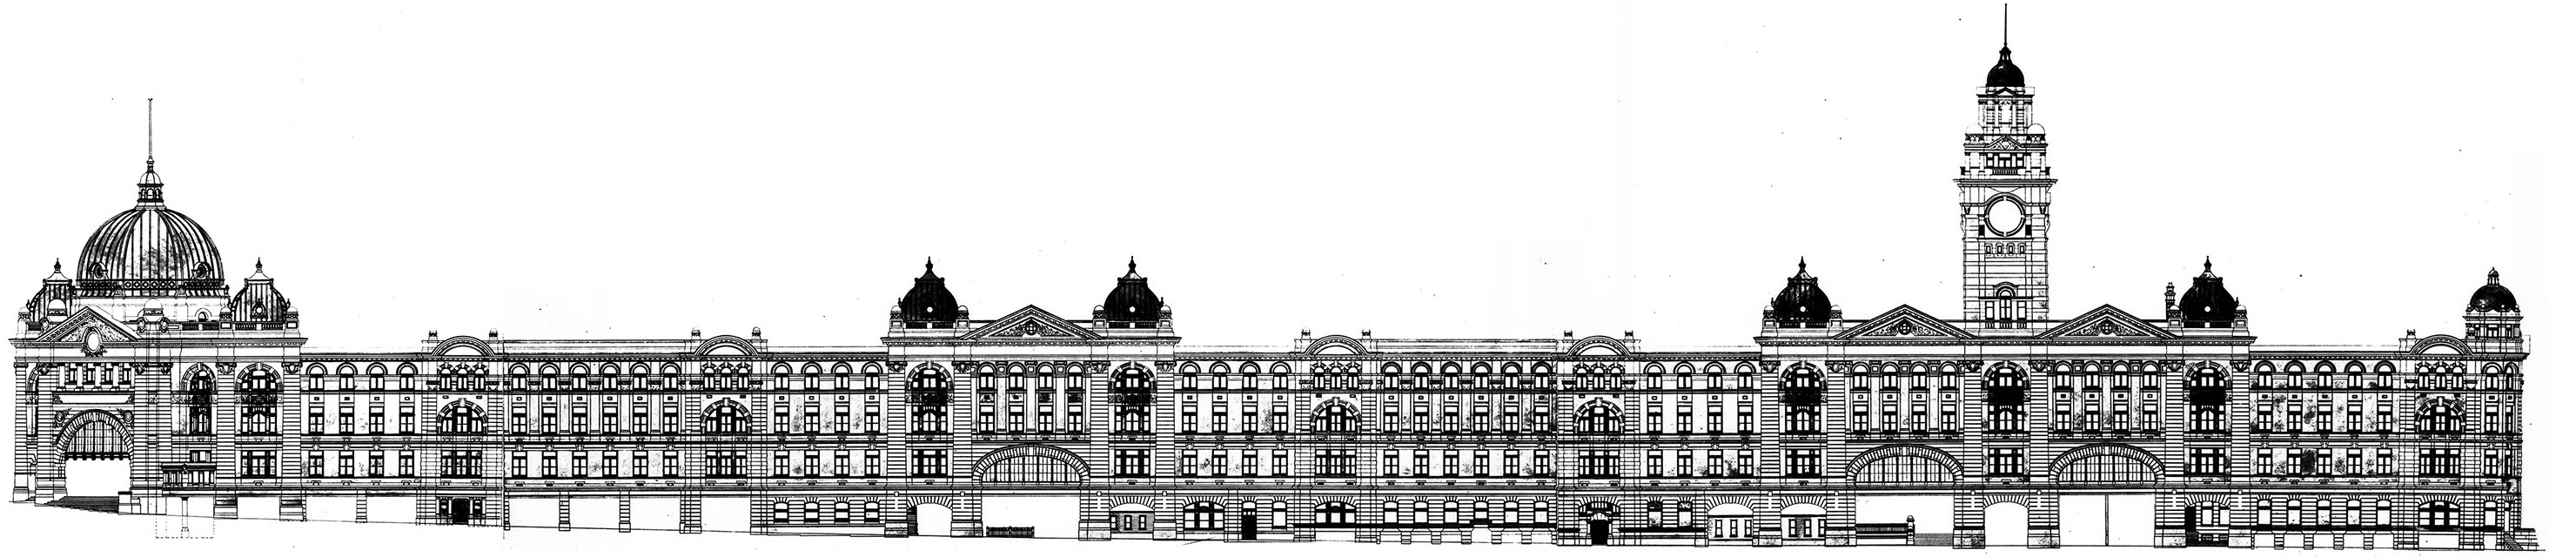 Flinders Street Station Front Elevation